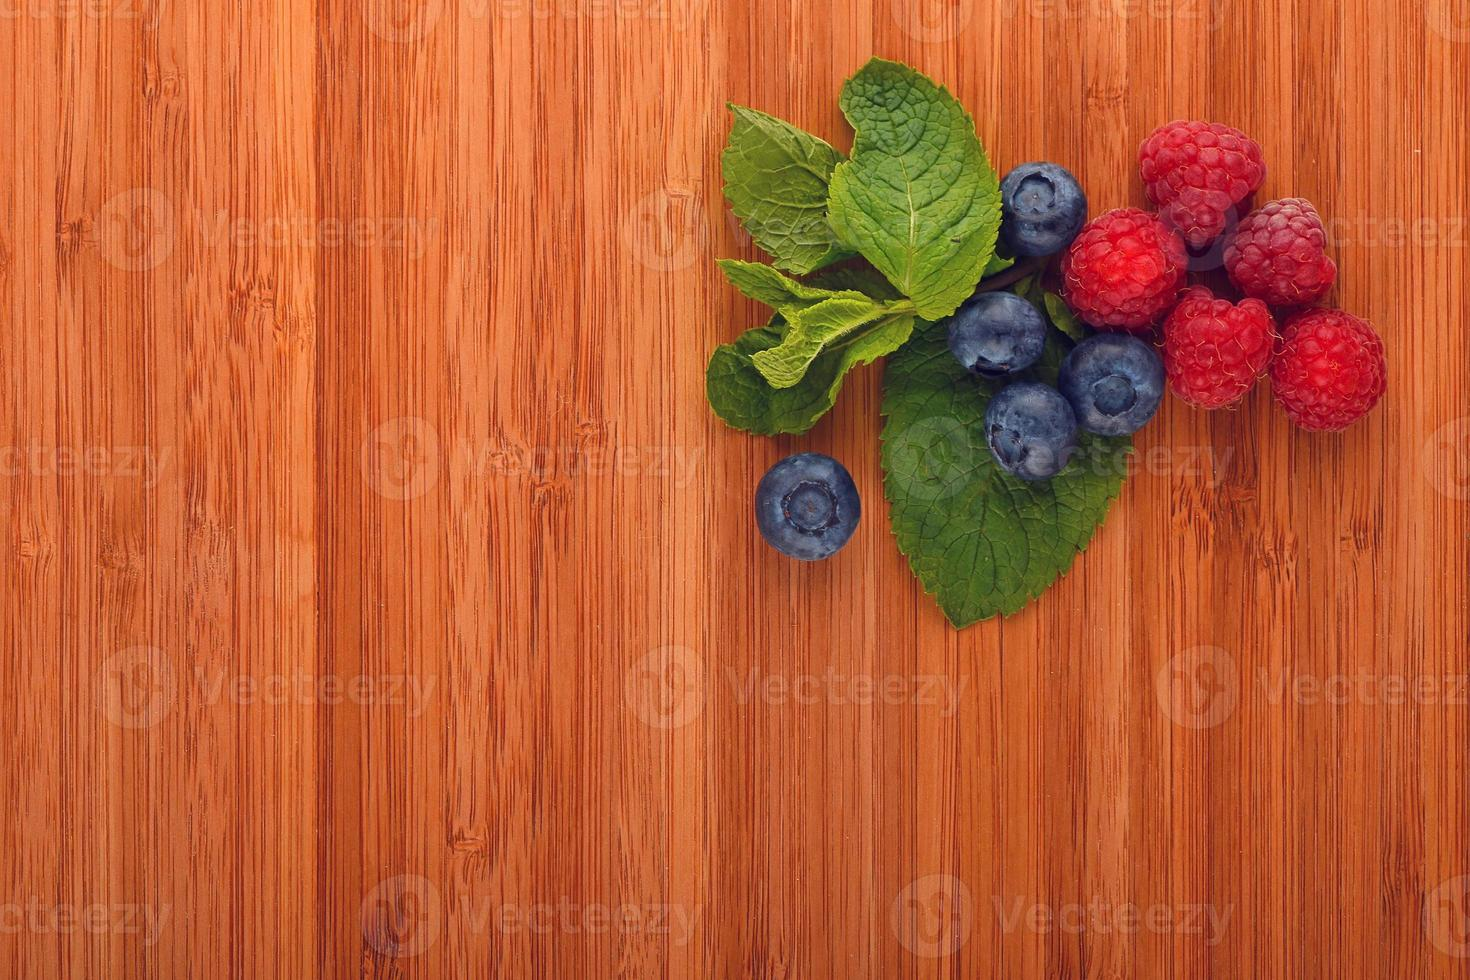 Cutting board with blueberries, raspberries and mint leaves photo